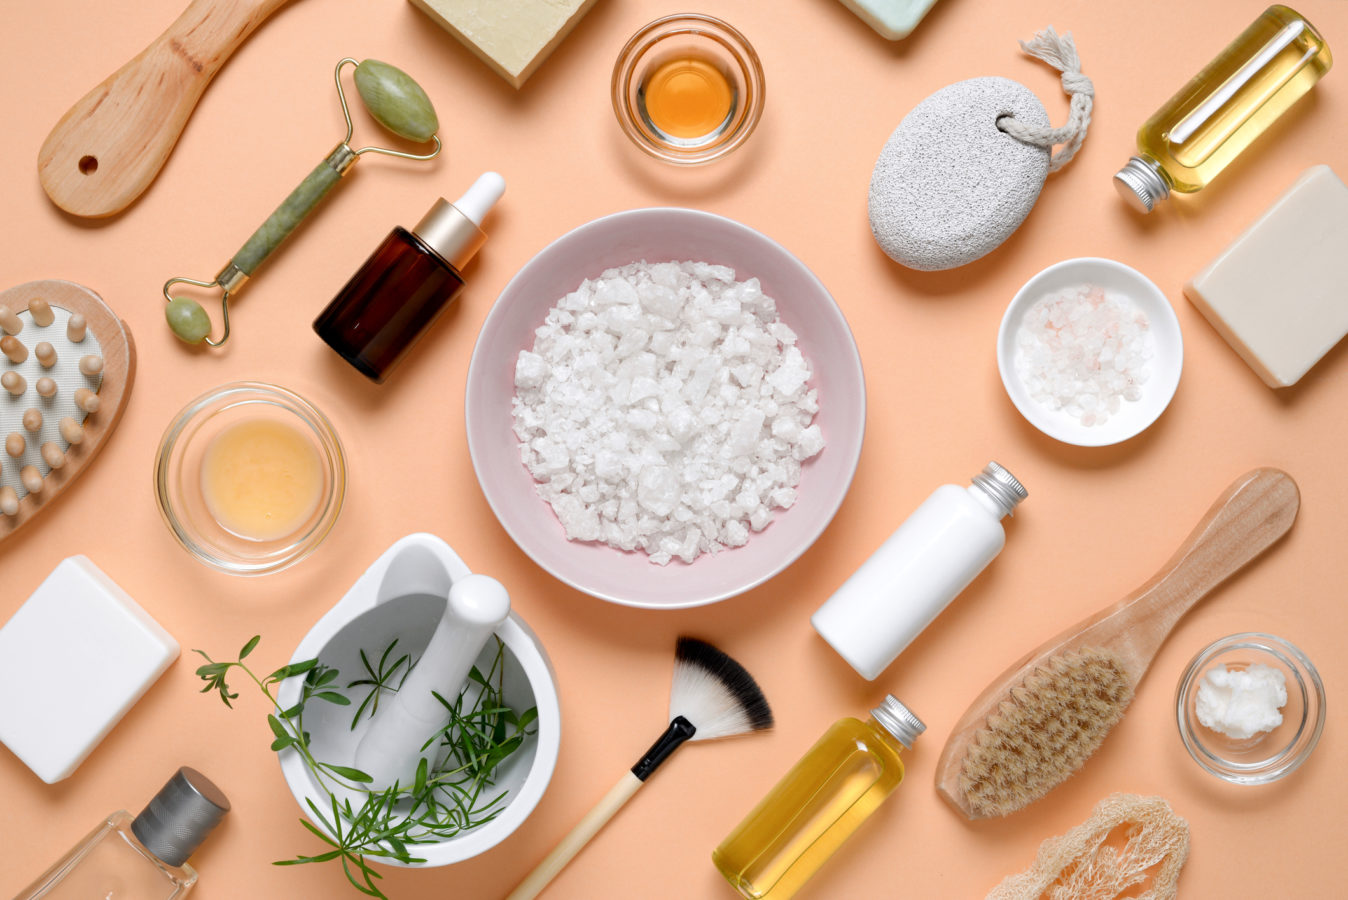 #FirstPerson: How I pared down to a minimal skincare routine during quarantine